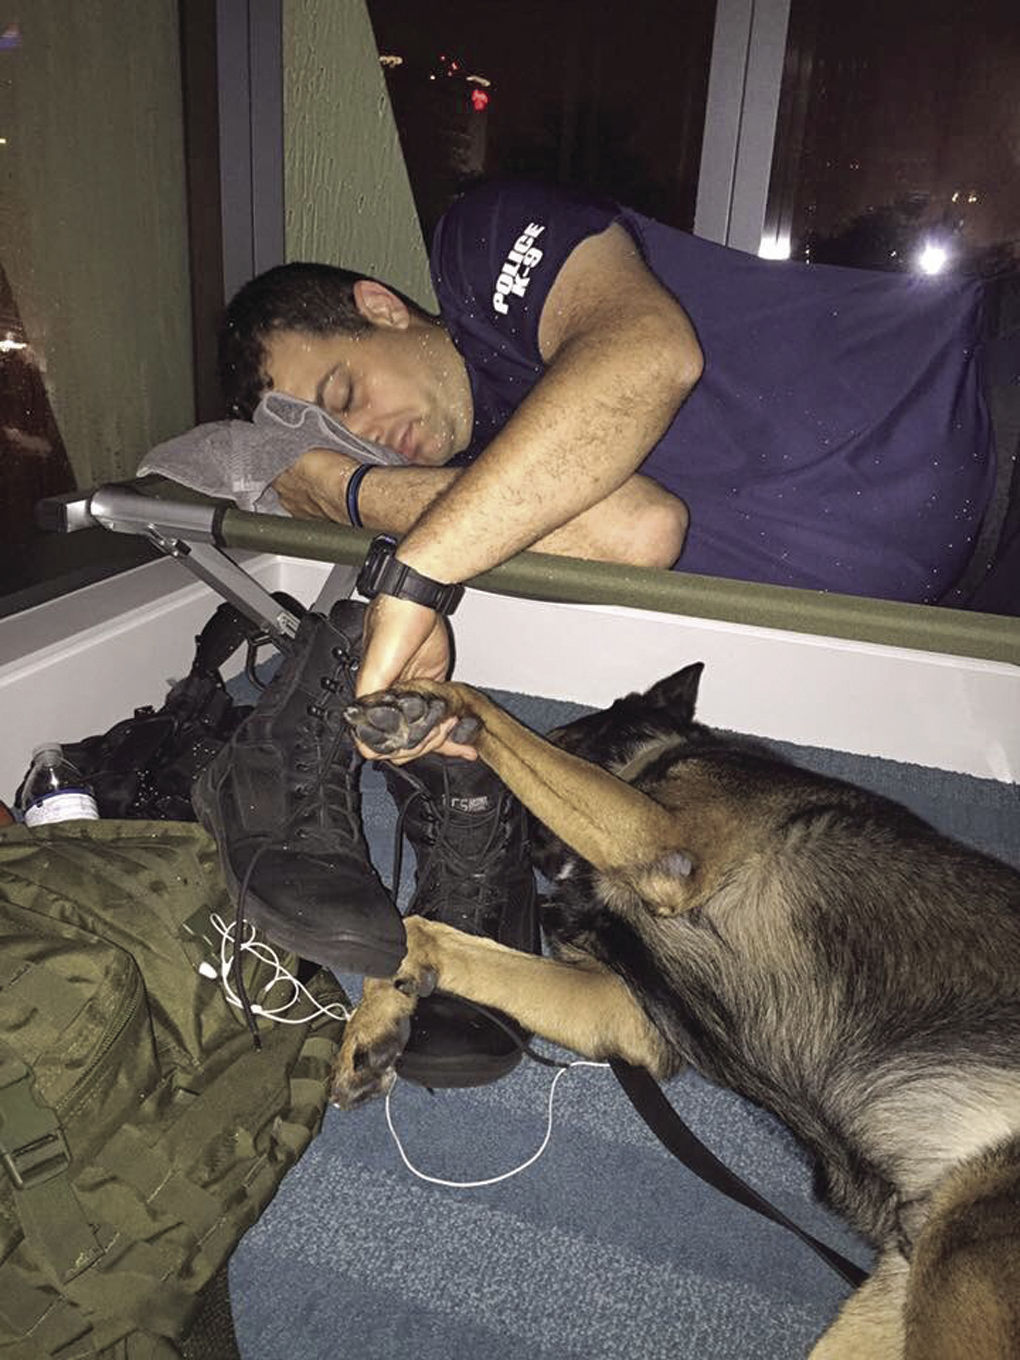 Fort Lauderdale officer and his dog